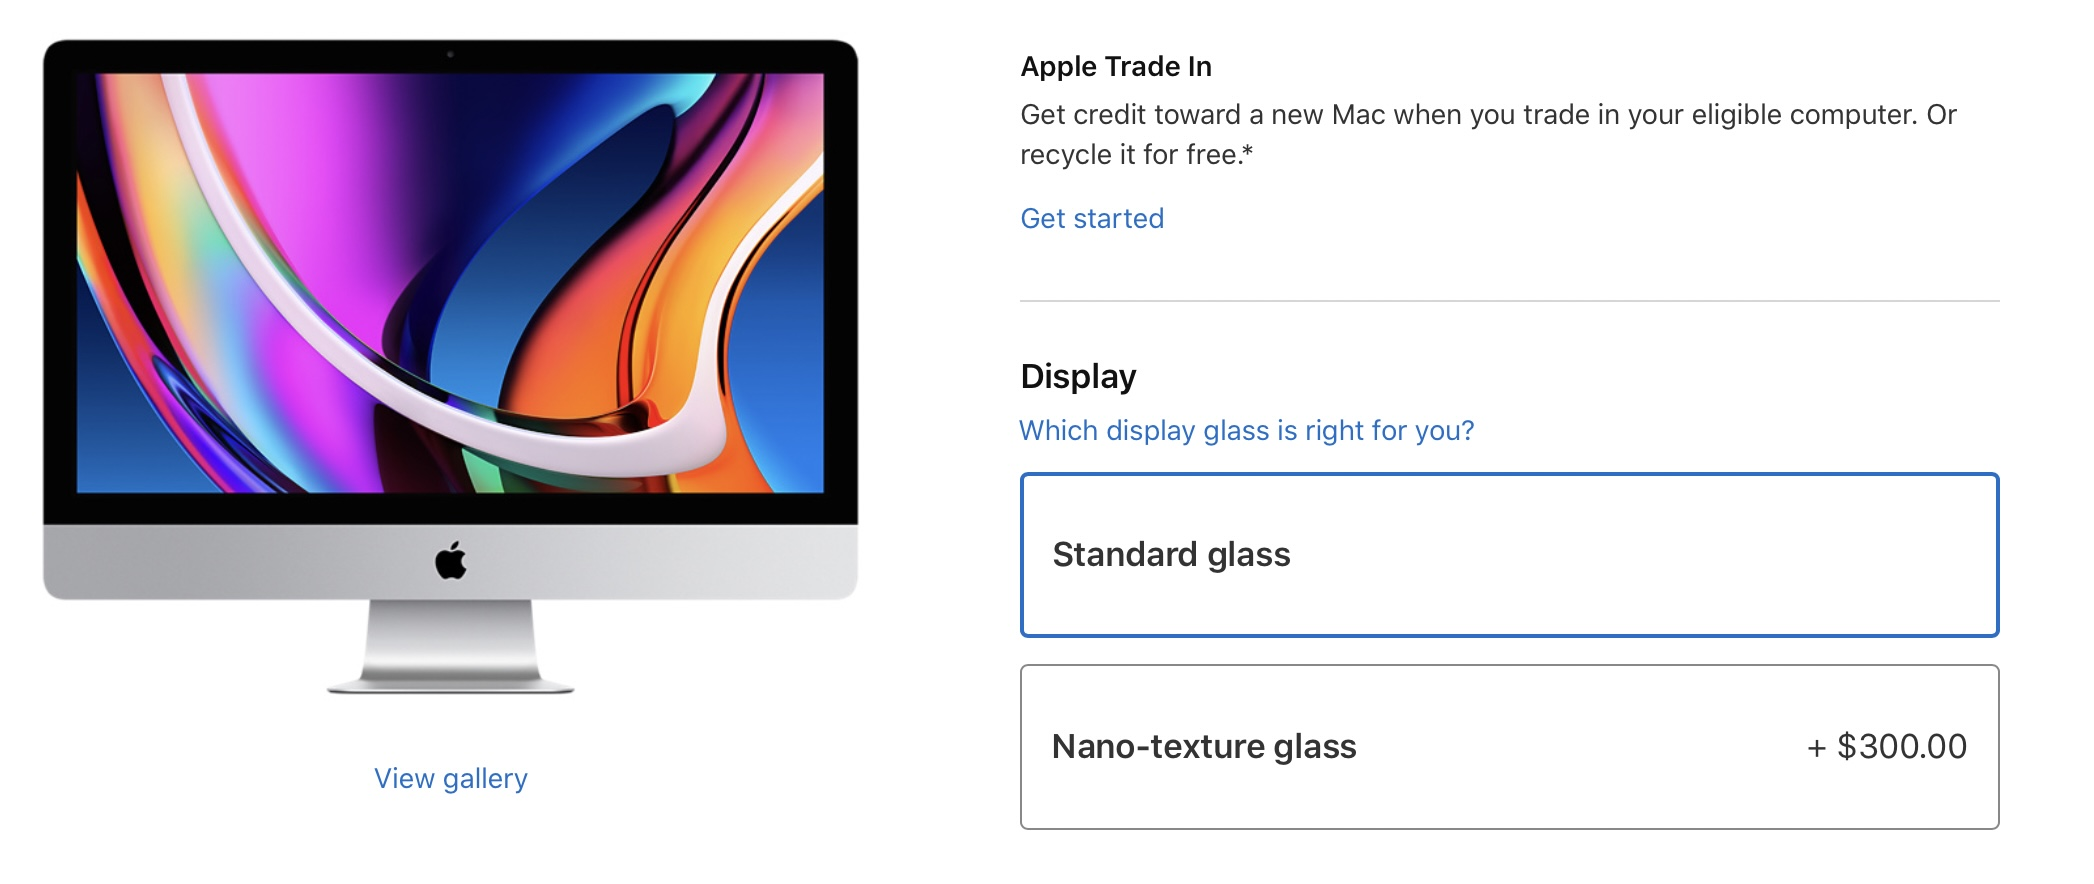 photo of Apple Cuts Price of Nano-Texture Glass Option for 27-inch iMac to $300, Down From $500 image